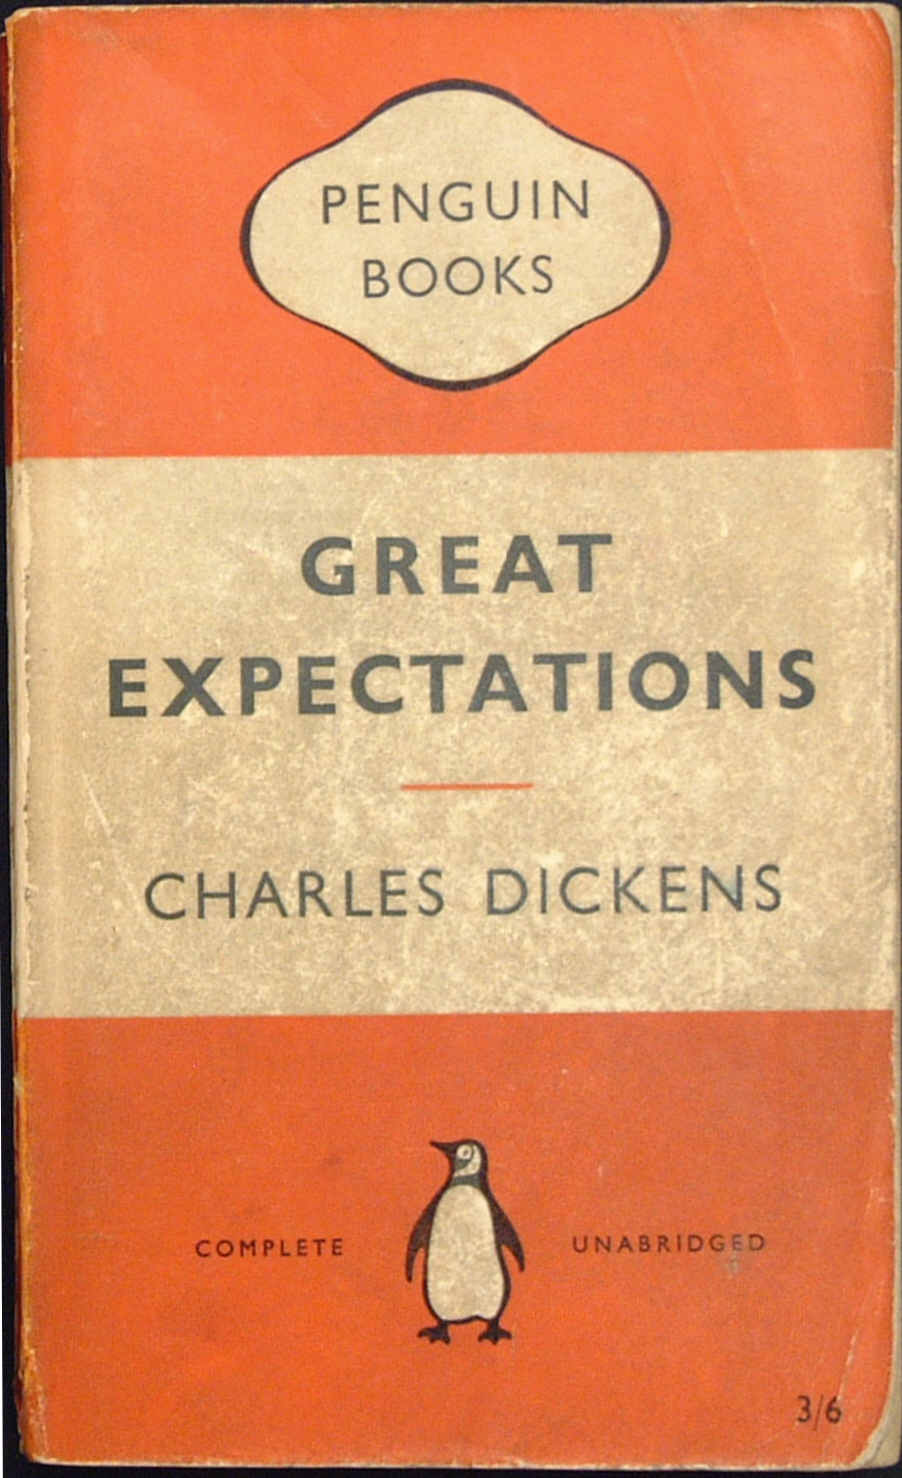 Original Penguin Book Covers : Great expectations original book cover pixshark